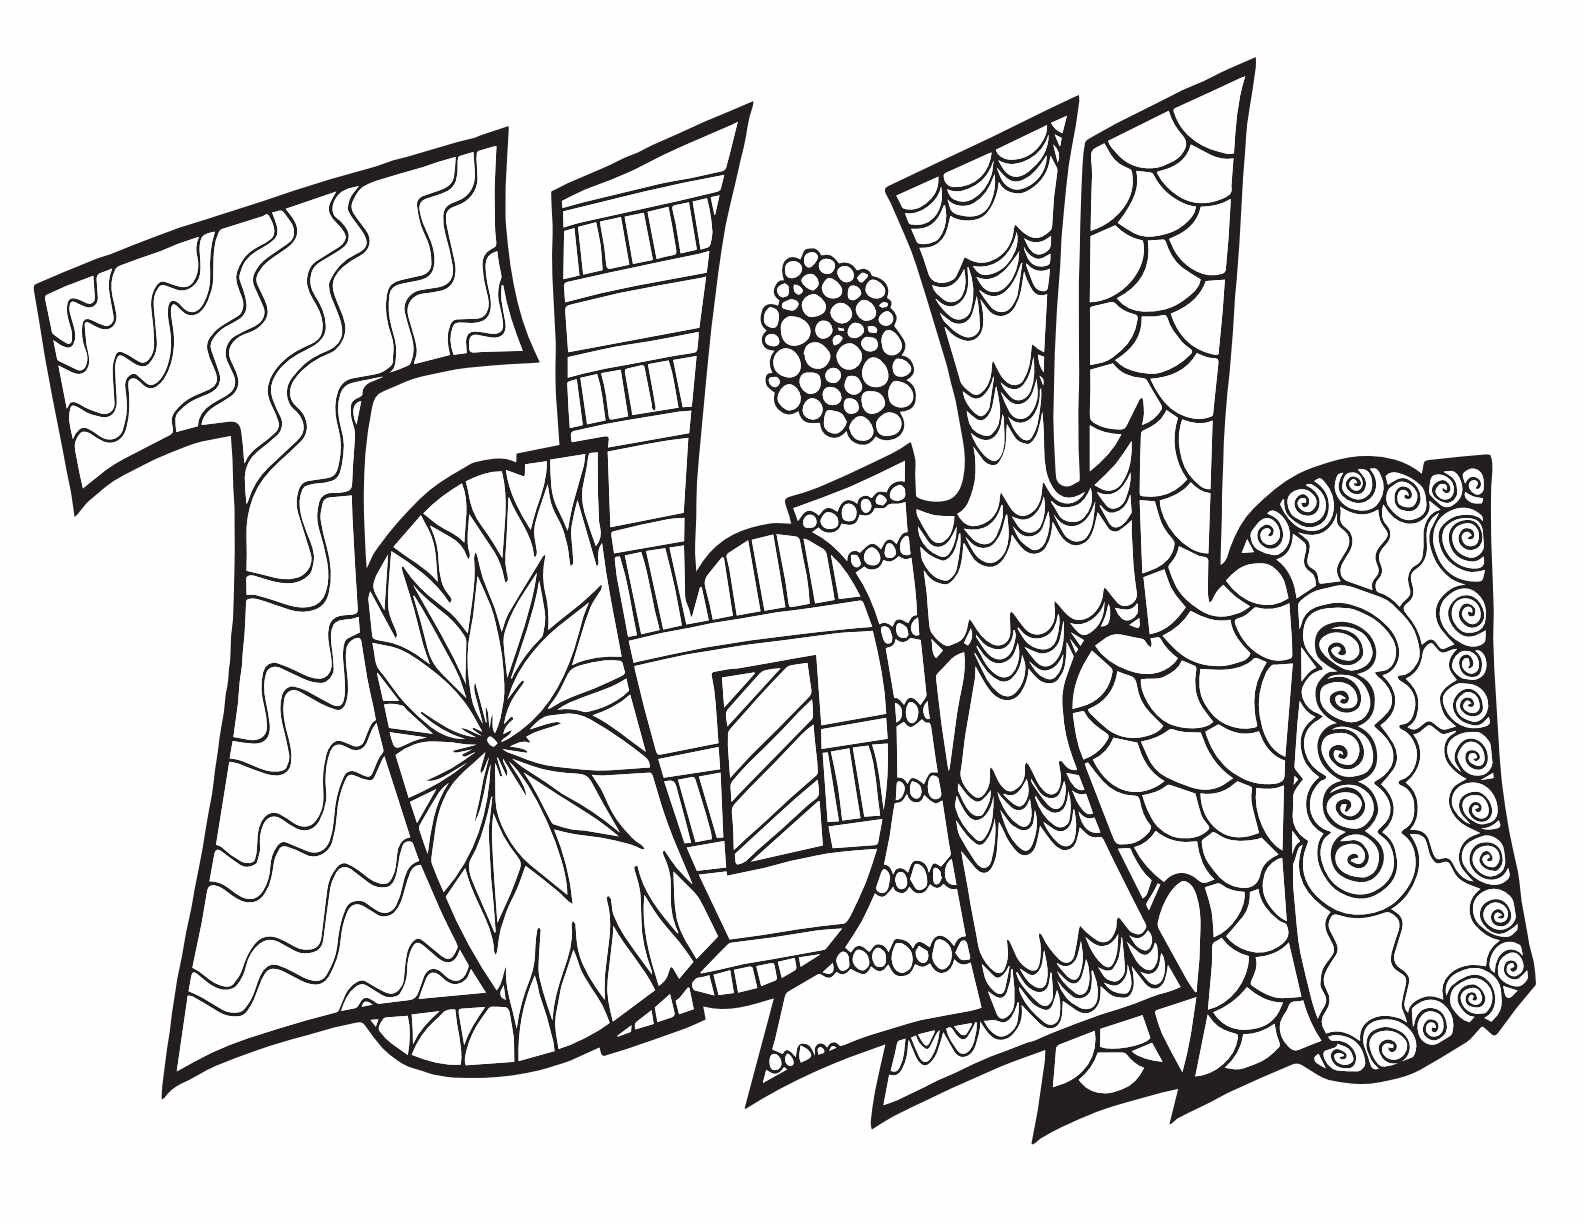 Tabitha Two Free Printable Coloring Page Stevie Doodles Free Printable Coloring Pages Free Printable Coloring Coloring Pages